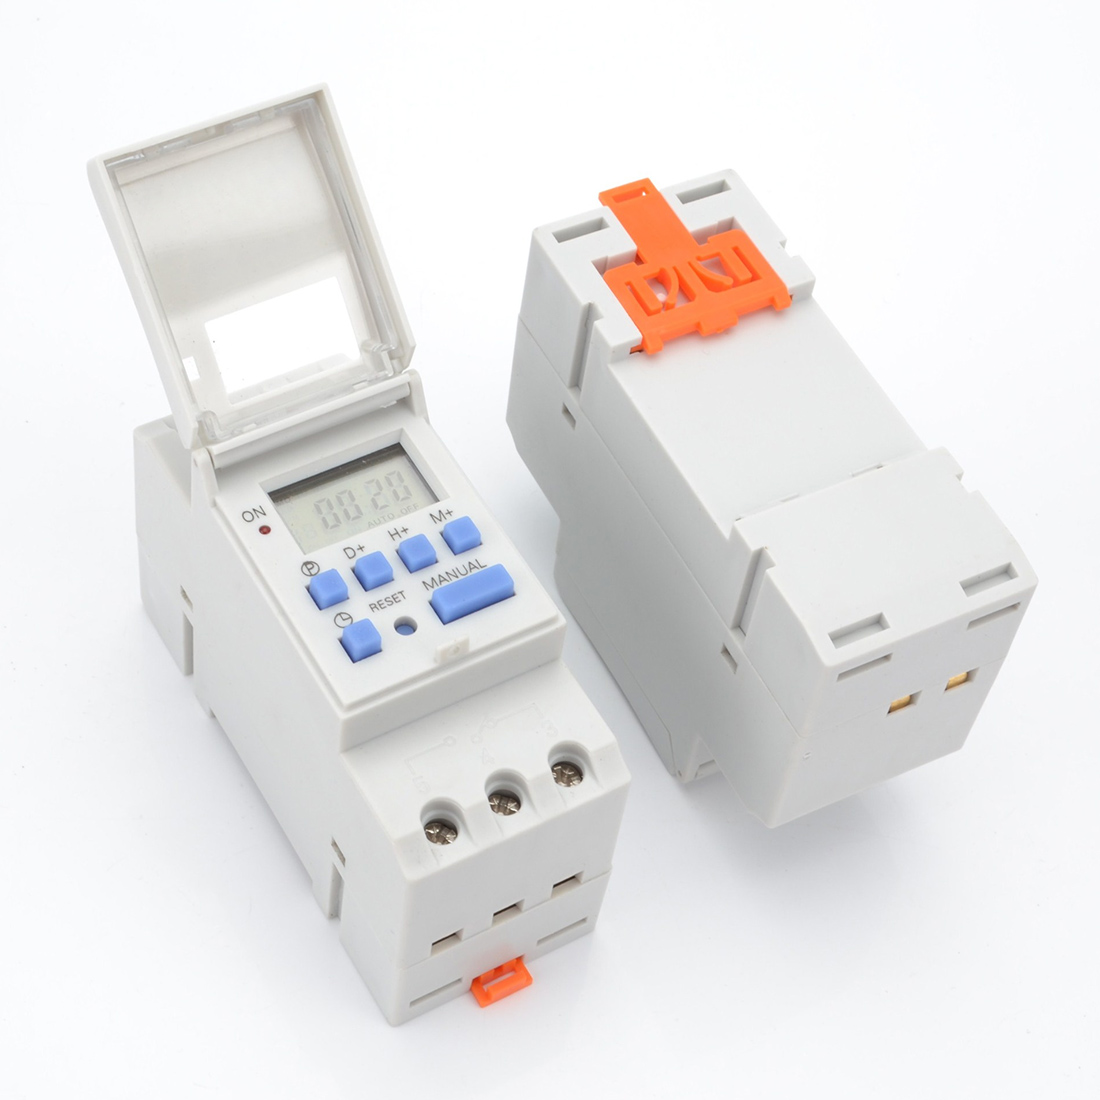 Programmable Digital 7 Days Timer Switch Relay Control 220V 230V 6A 10A 16A 20A 25A 30A Electronic Weekly